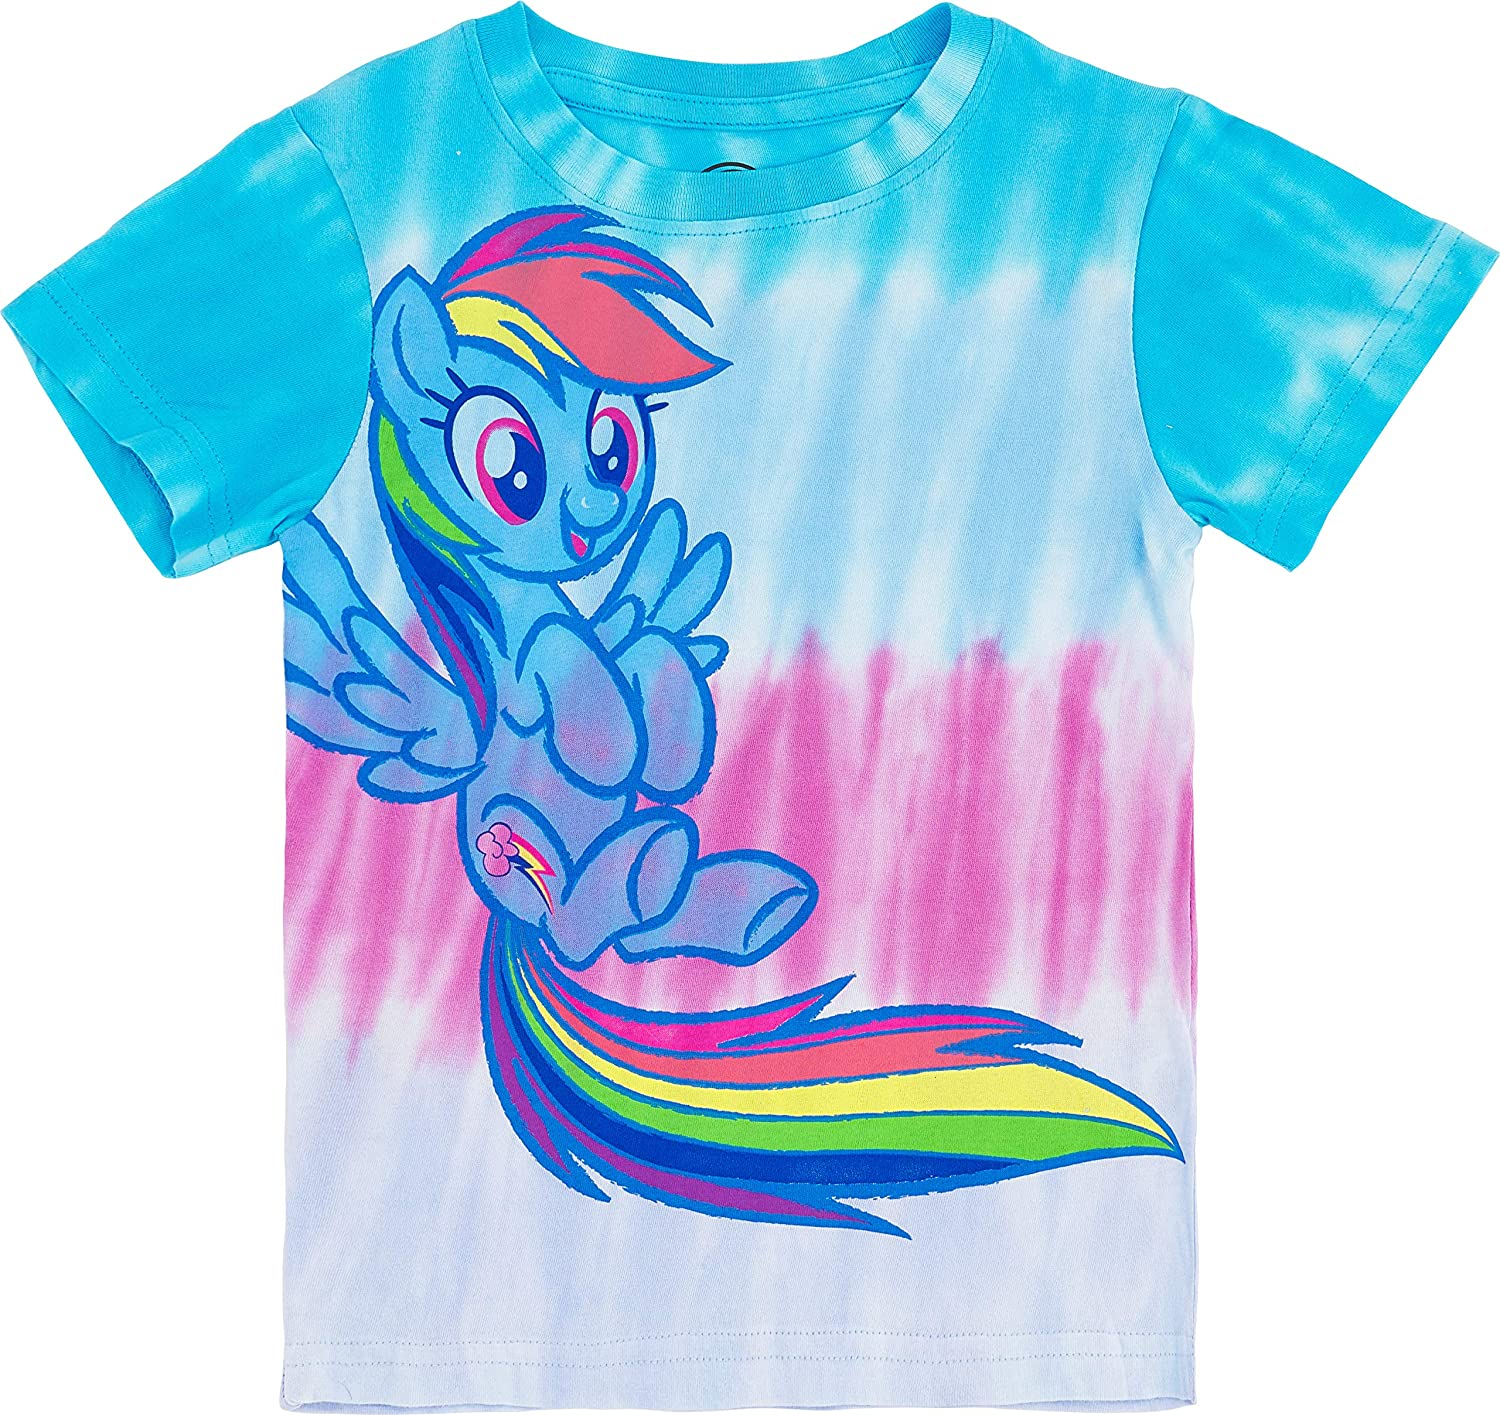 My Little Pony Girls Tie Dye Graphic T-Shirt - Rainbow Dash, Pinkie Pie, Twilight Sparkle, Apple Jack, Sizes 4-6X